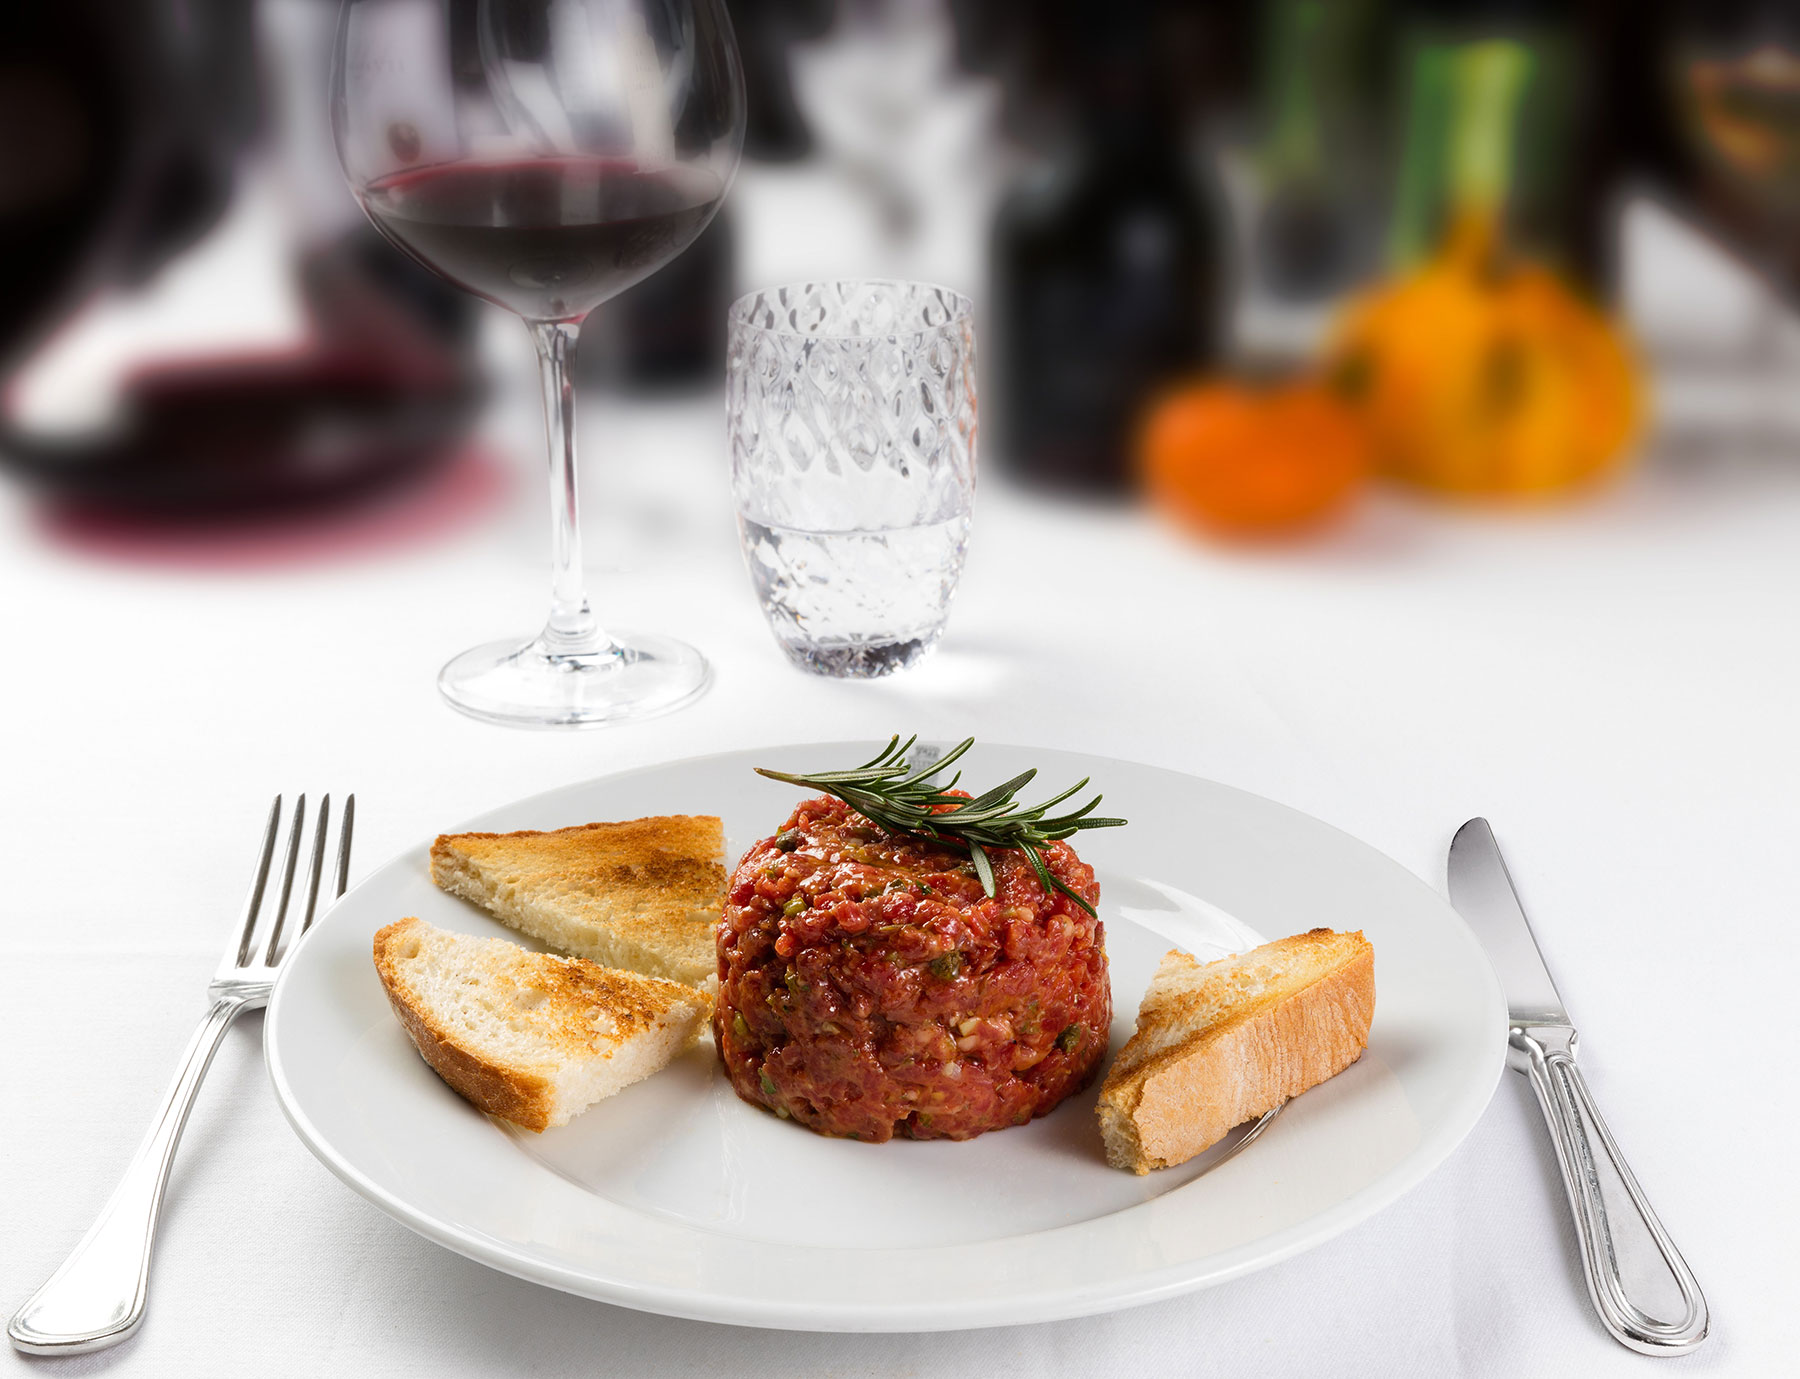 Tartare di filetto con crostini di pane